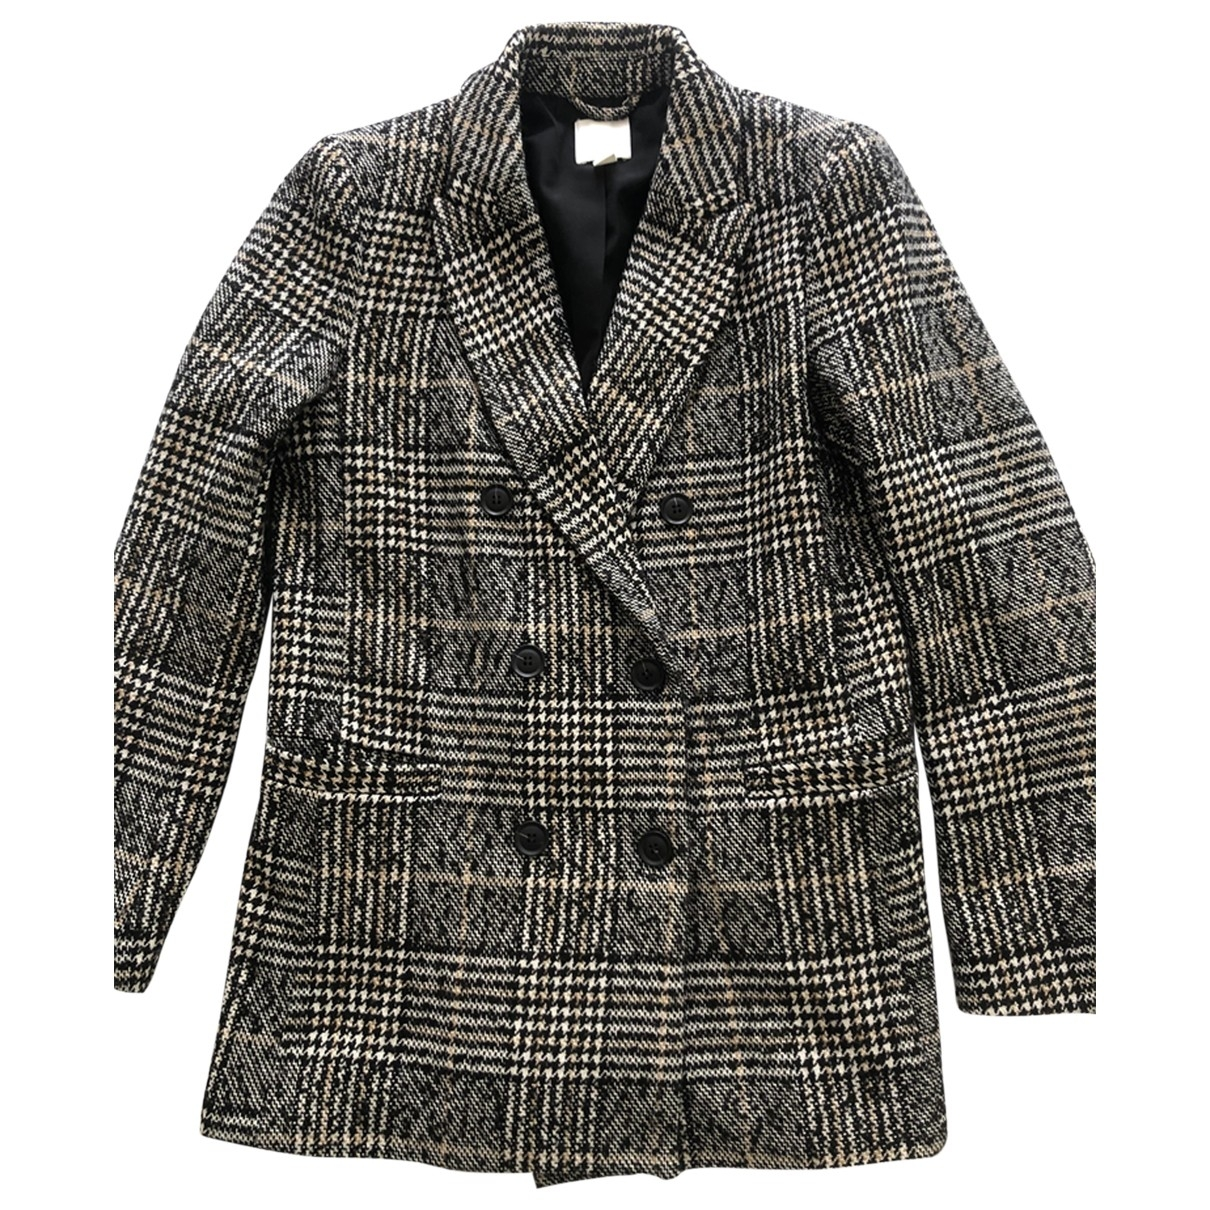 H&m Conscious Exclusive \N Jacke in  Bunt Tweed